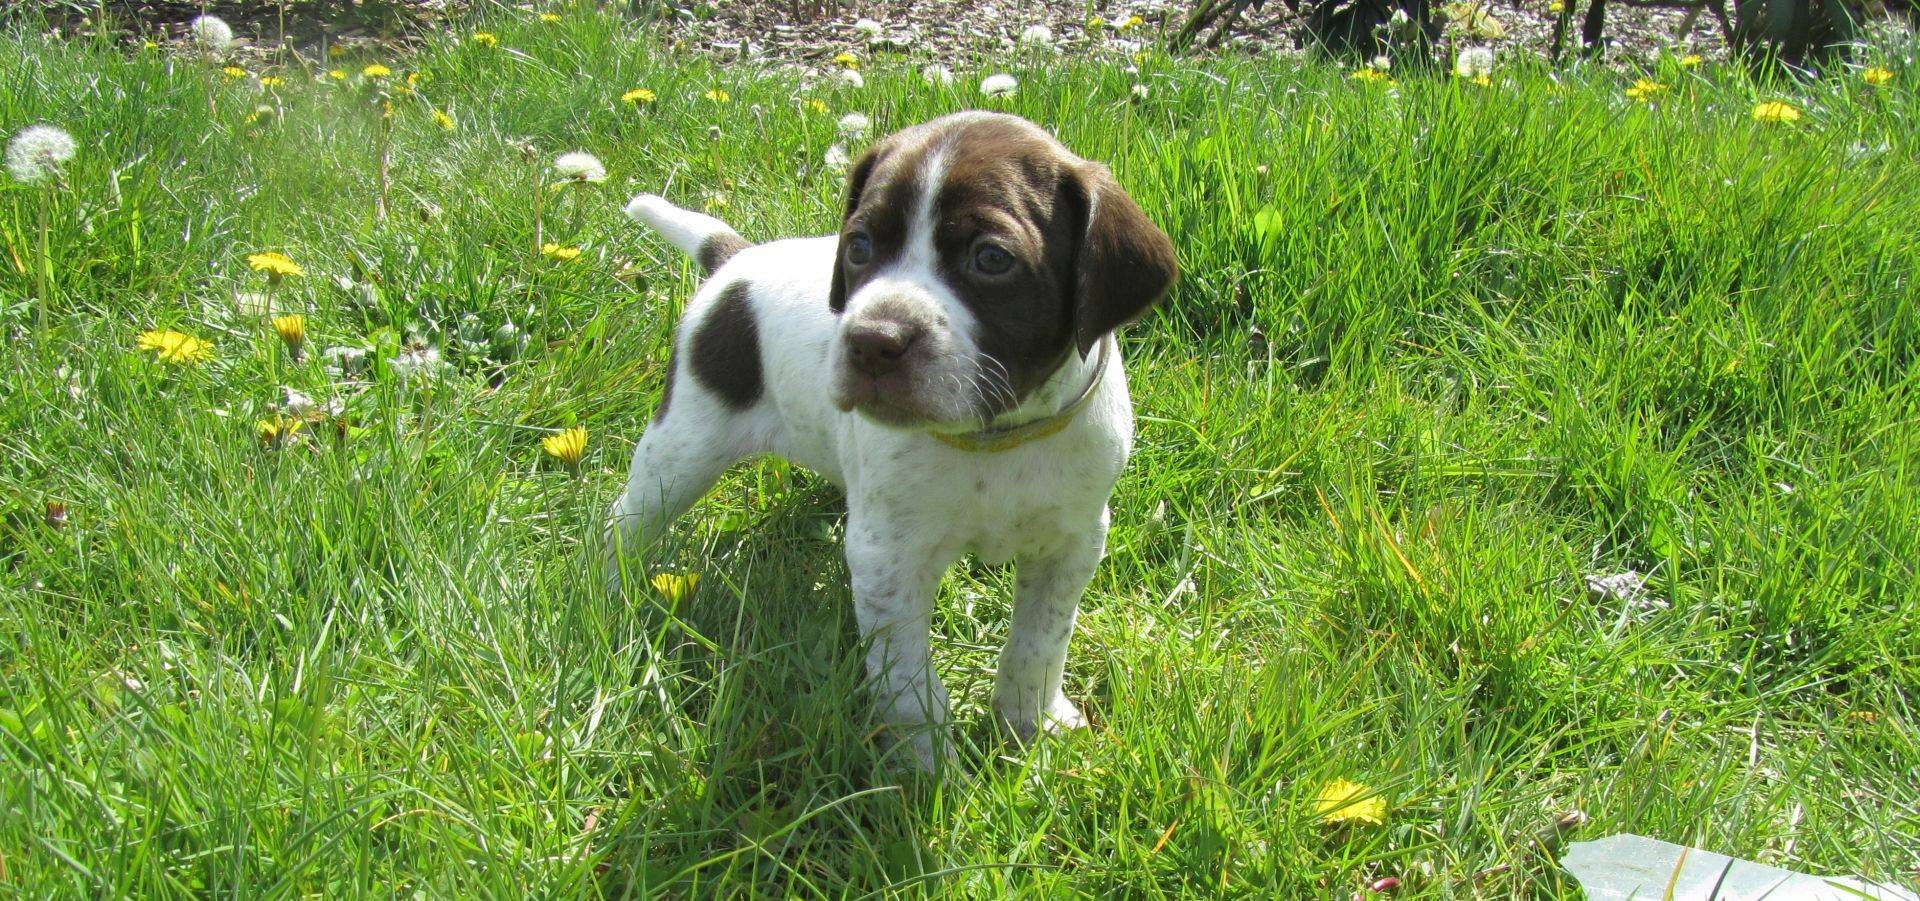 Pups. Puppies. Chiots. Braque Français Type Pyrénées. Franse Pointer van het Pyrenese Type. French Pyrenean Pointer. Staande jachthond FCI groep 7. Pointing dog FCI group 7. Chien d'arrêt FCI groupe 7. French Pointing Breeds. Französische Vorsteher.